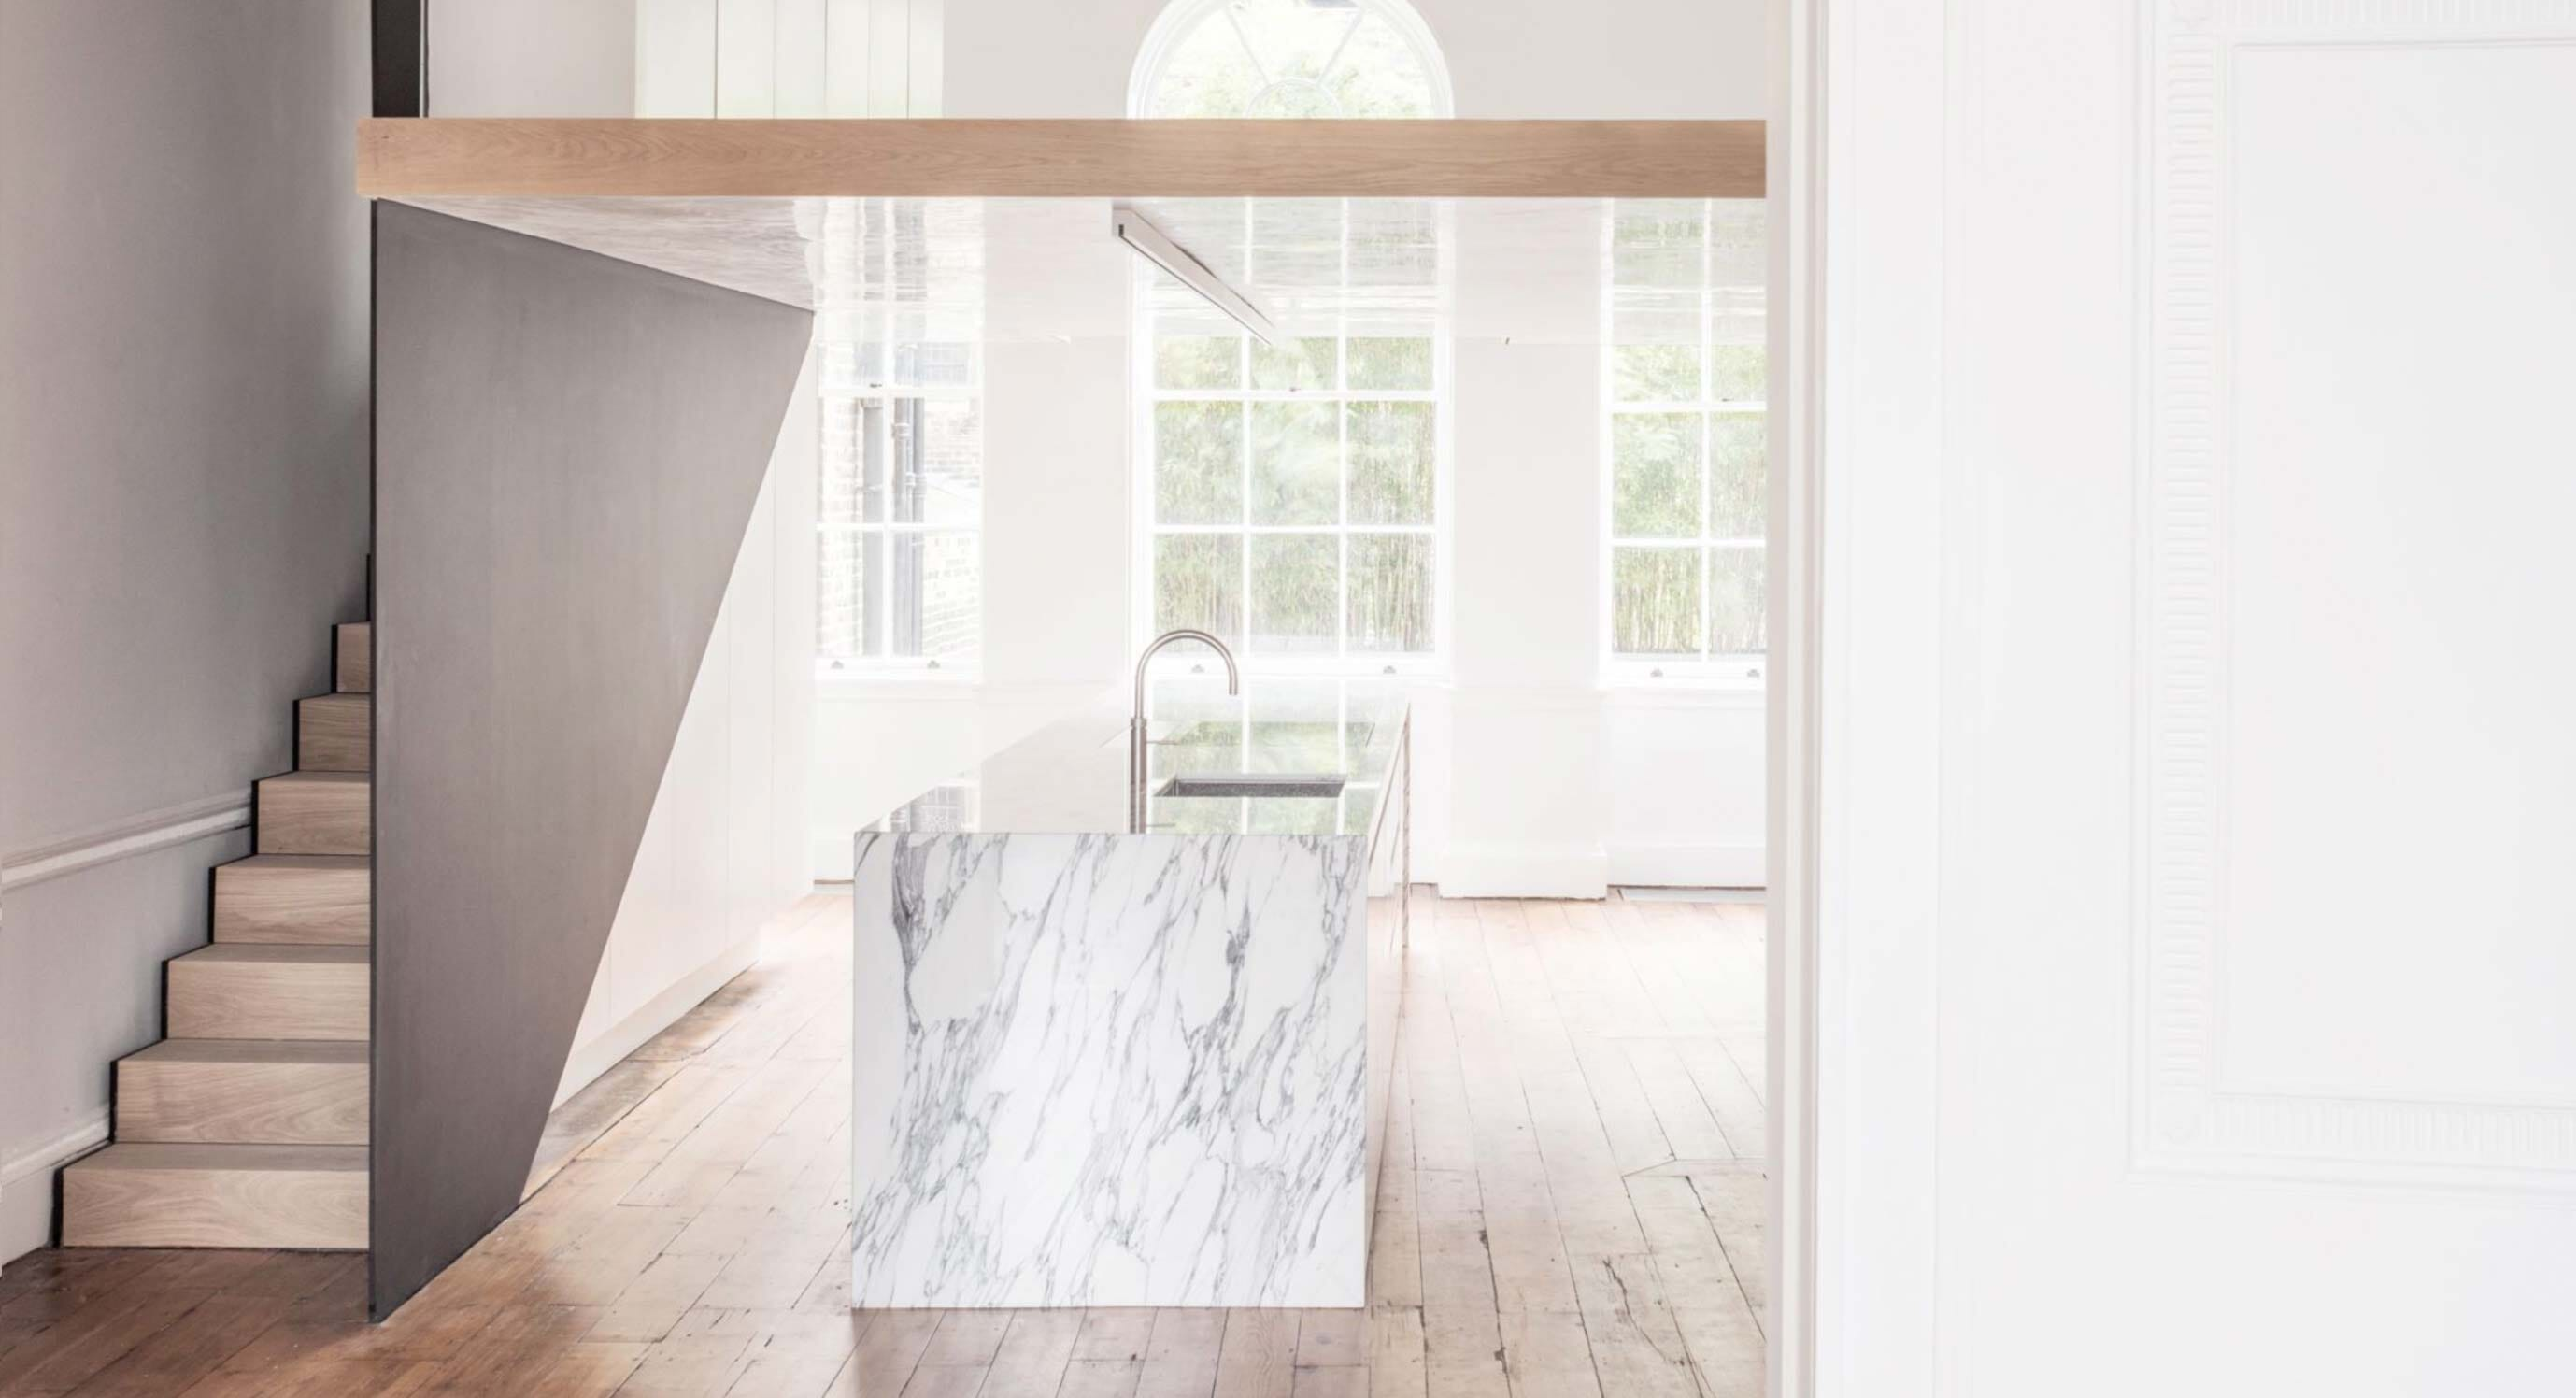 HASA Architects Transform This Grade II Listed Building In Mayfair